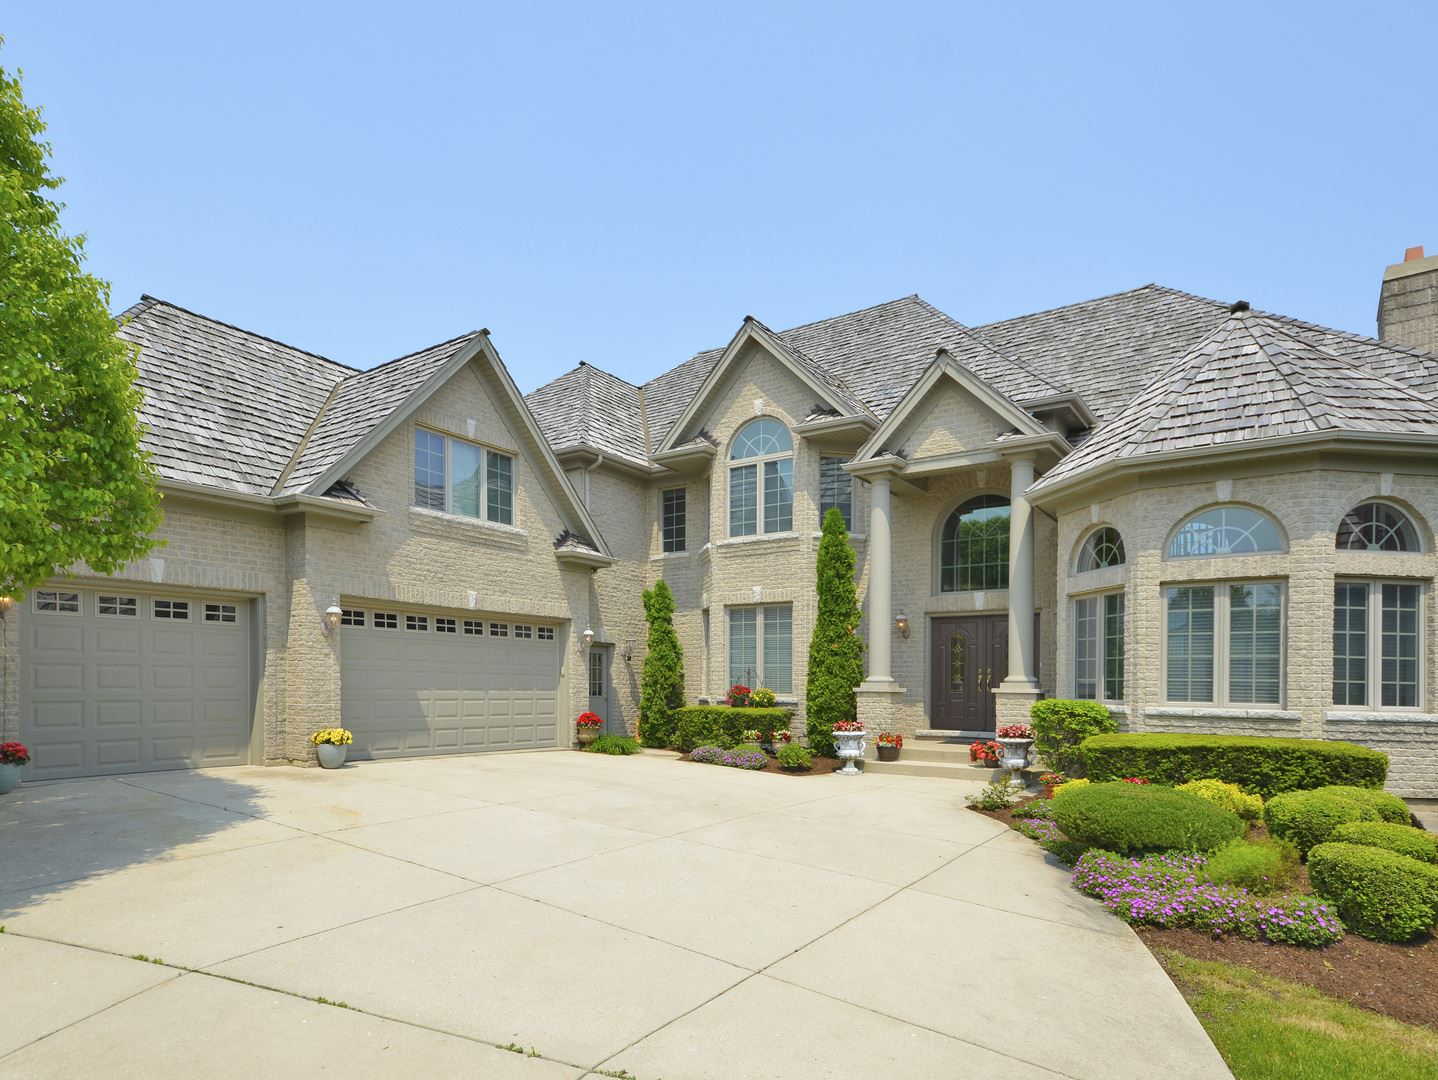 1695 Pebble Beach Way, Vernon Hills, IL 60061 - #: 10618856